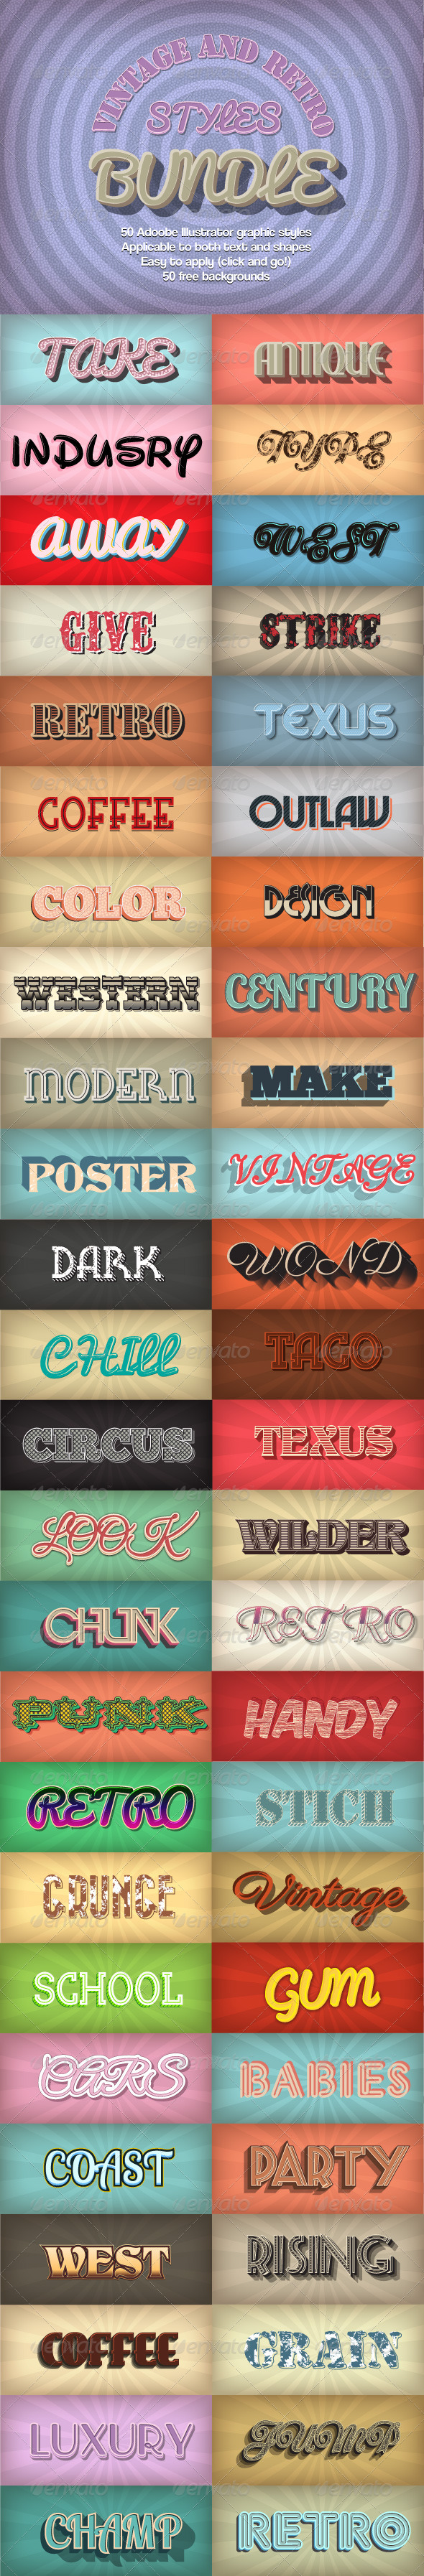 GraphicRiver Bundle-Vintage and Retro Styles 6757408